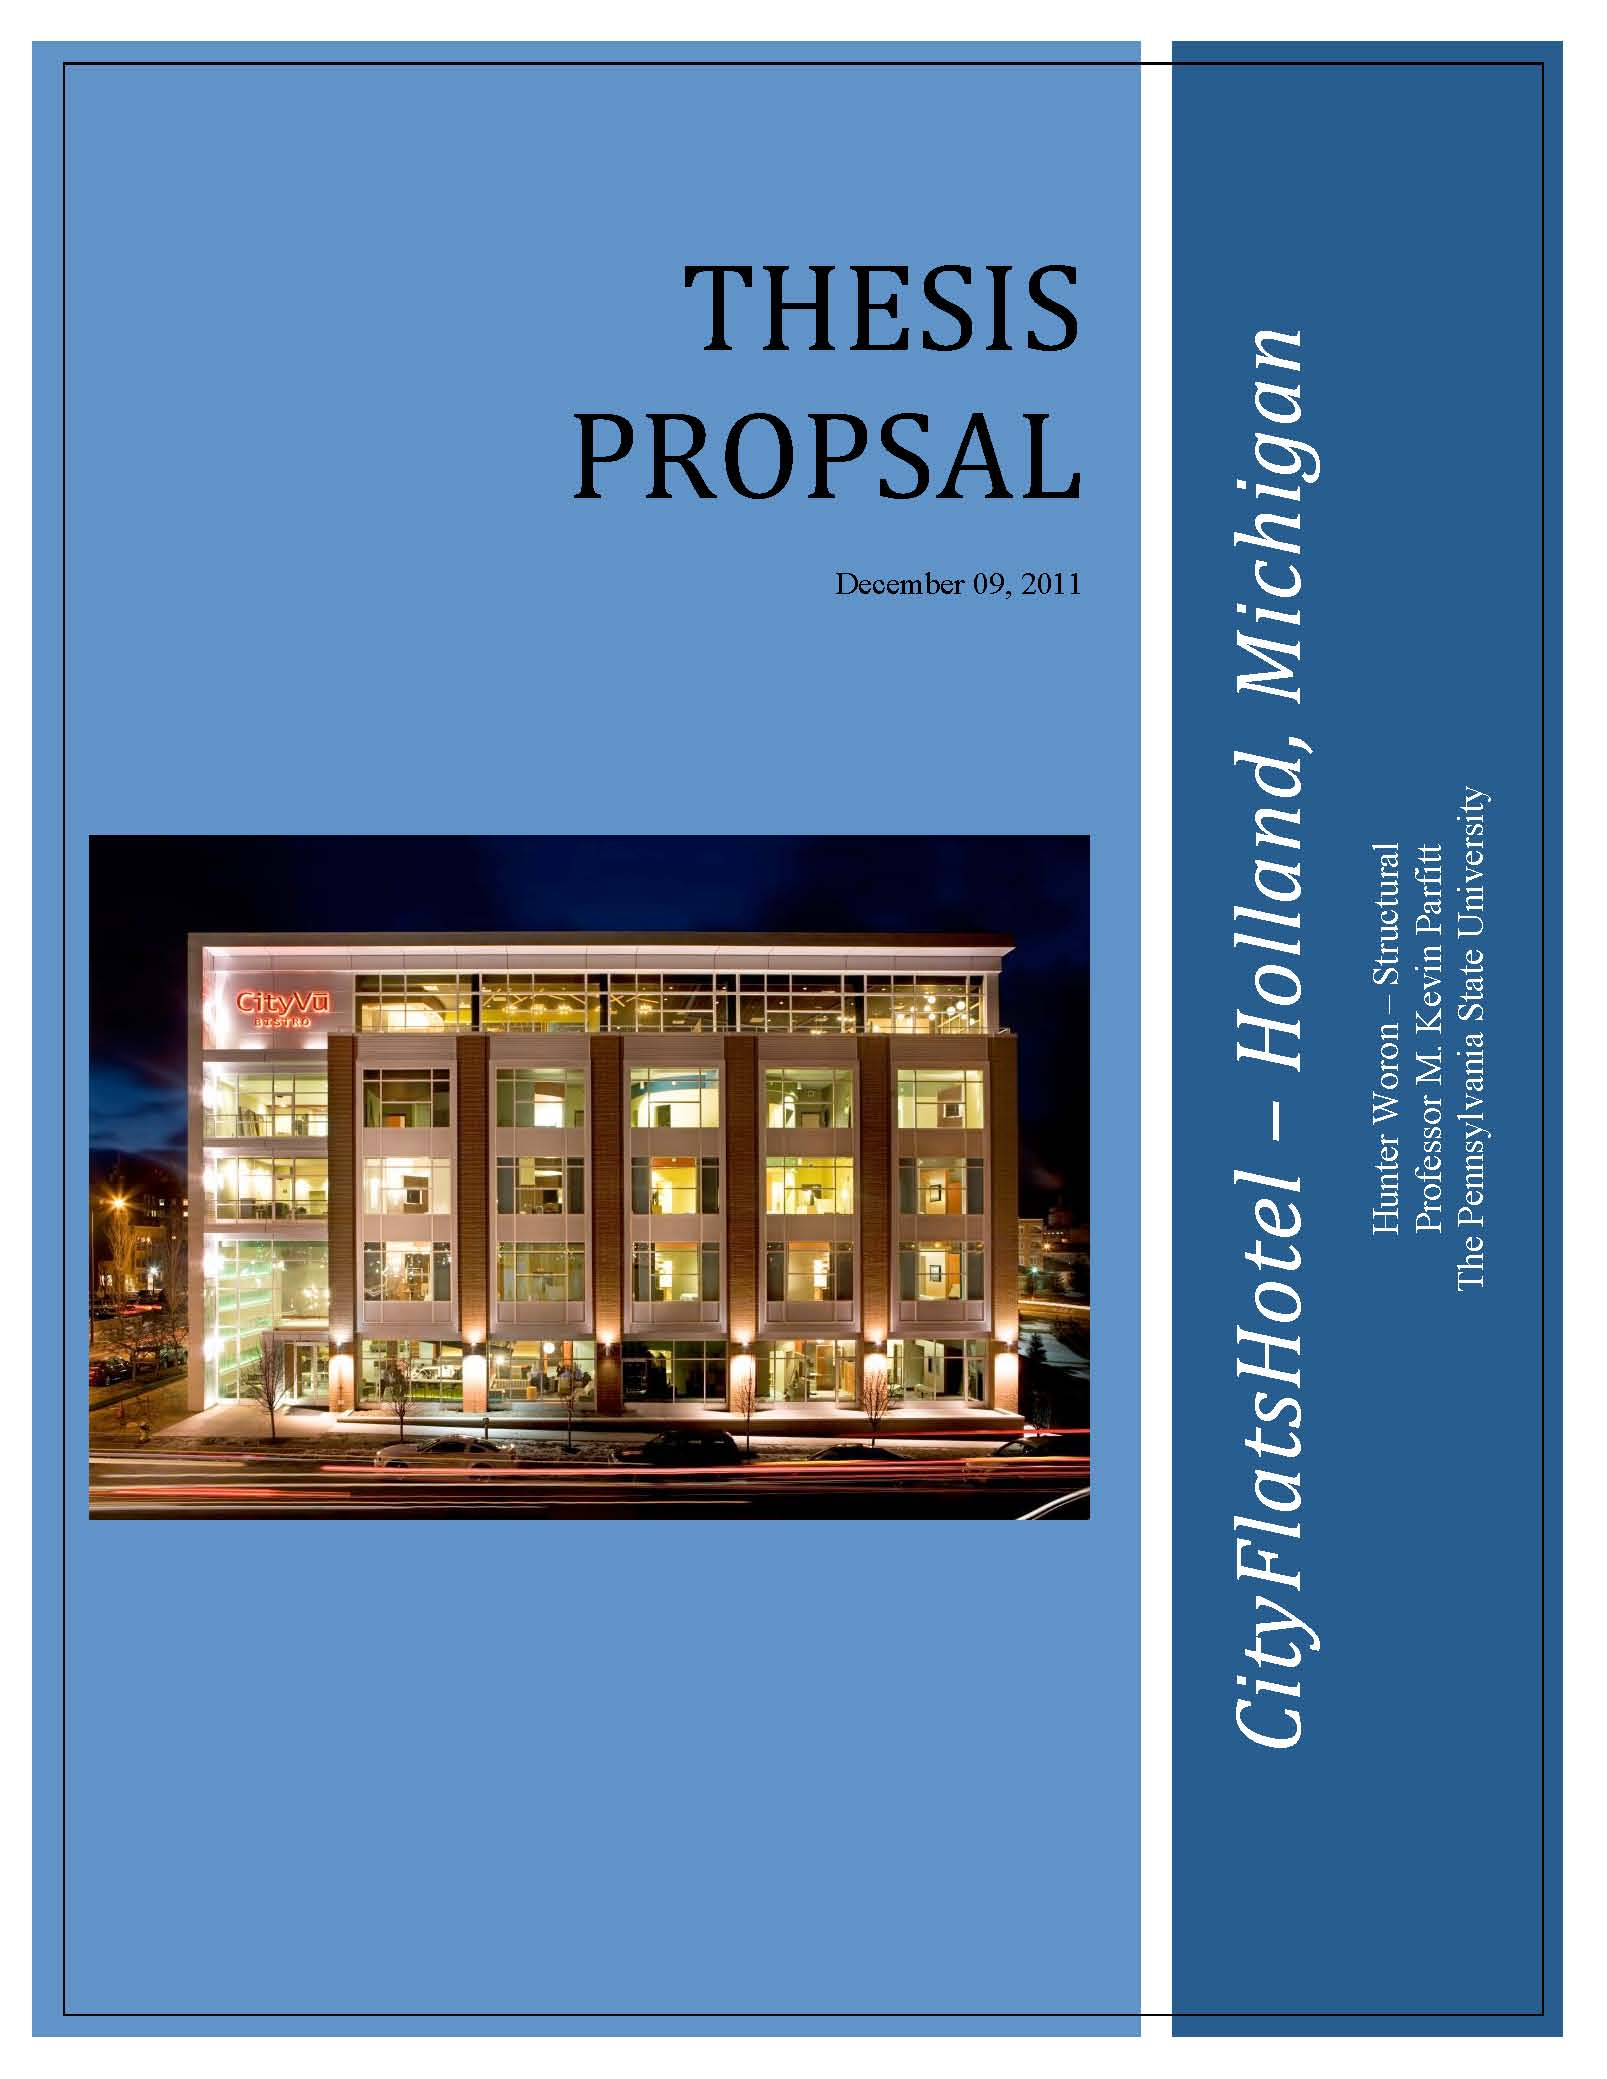 ... , and accurate advice and support for your dissertation or thesis